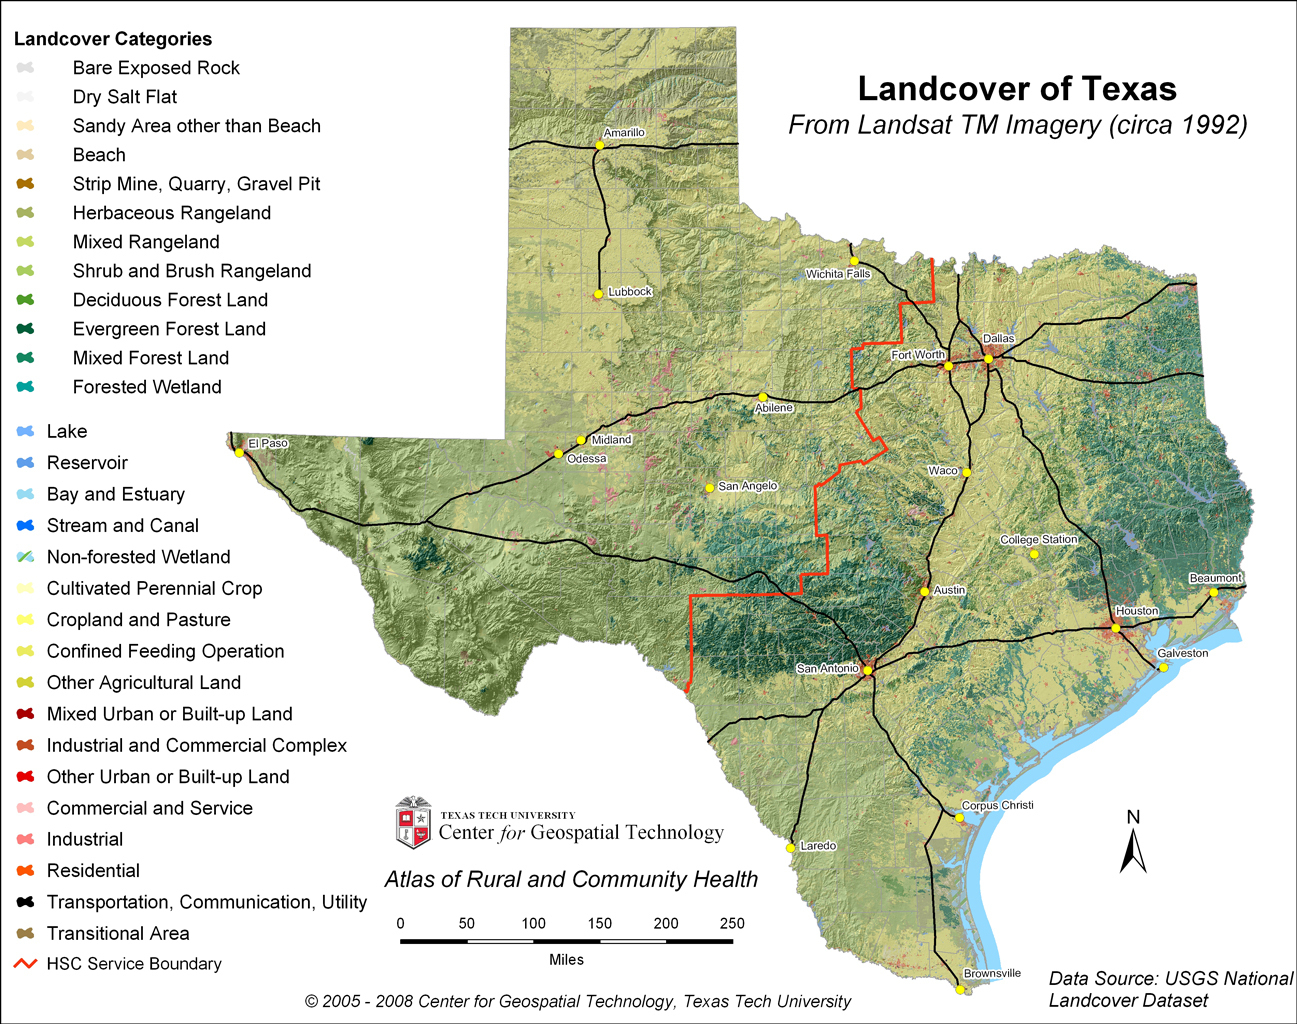 Geographical Maps Of Texaswebsite Picture Gallerylandcover Of Texas - Texas Land Map